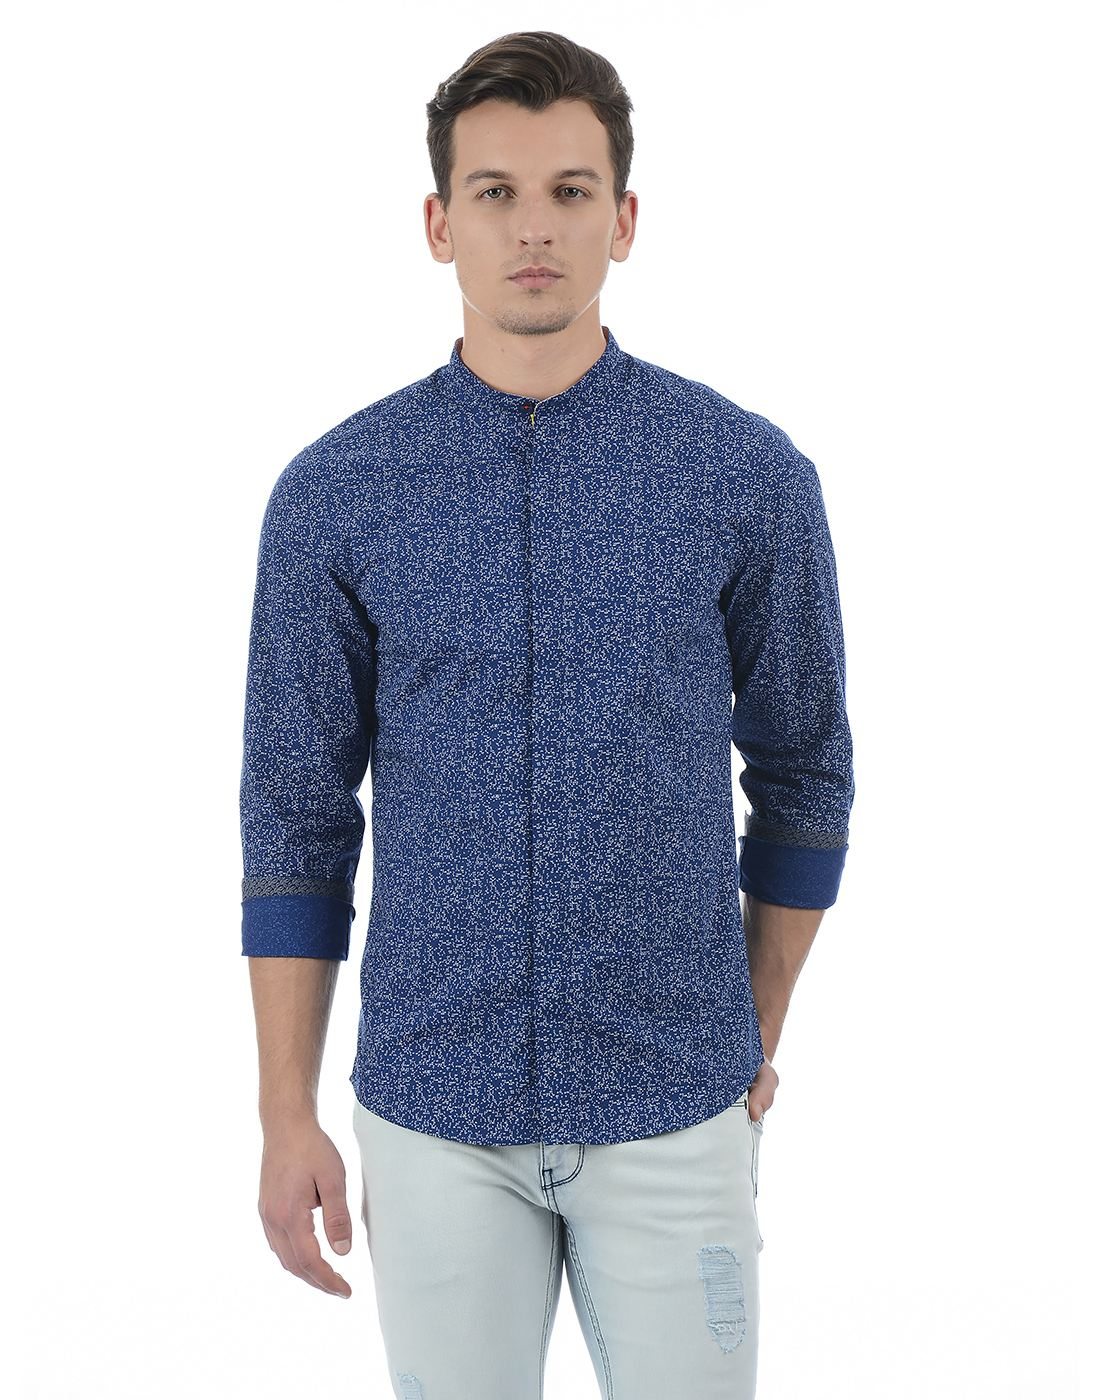 United Colors of Benetton Men's Blue Printed Shirt